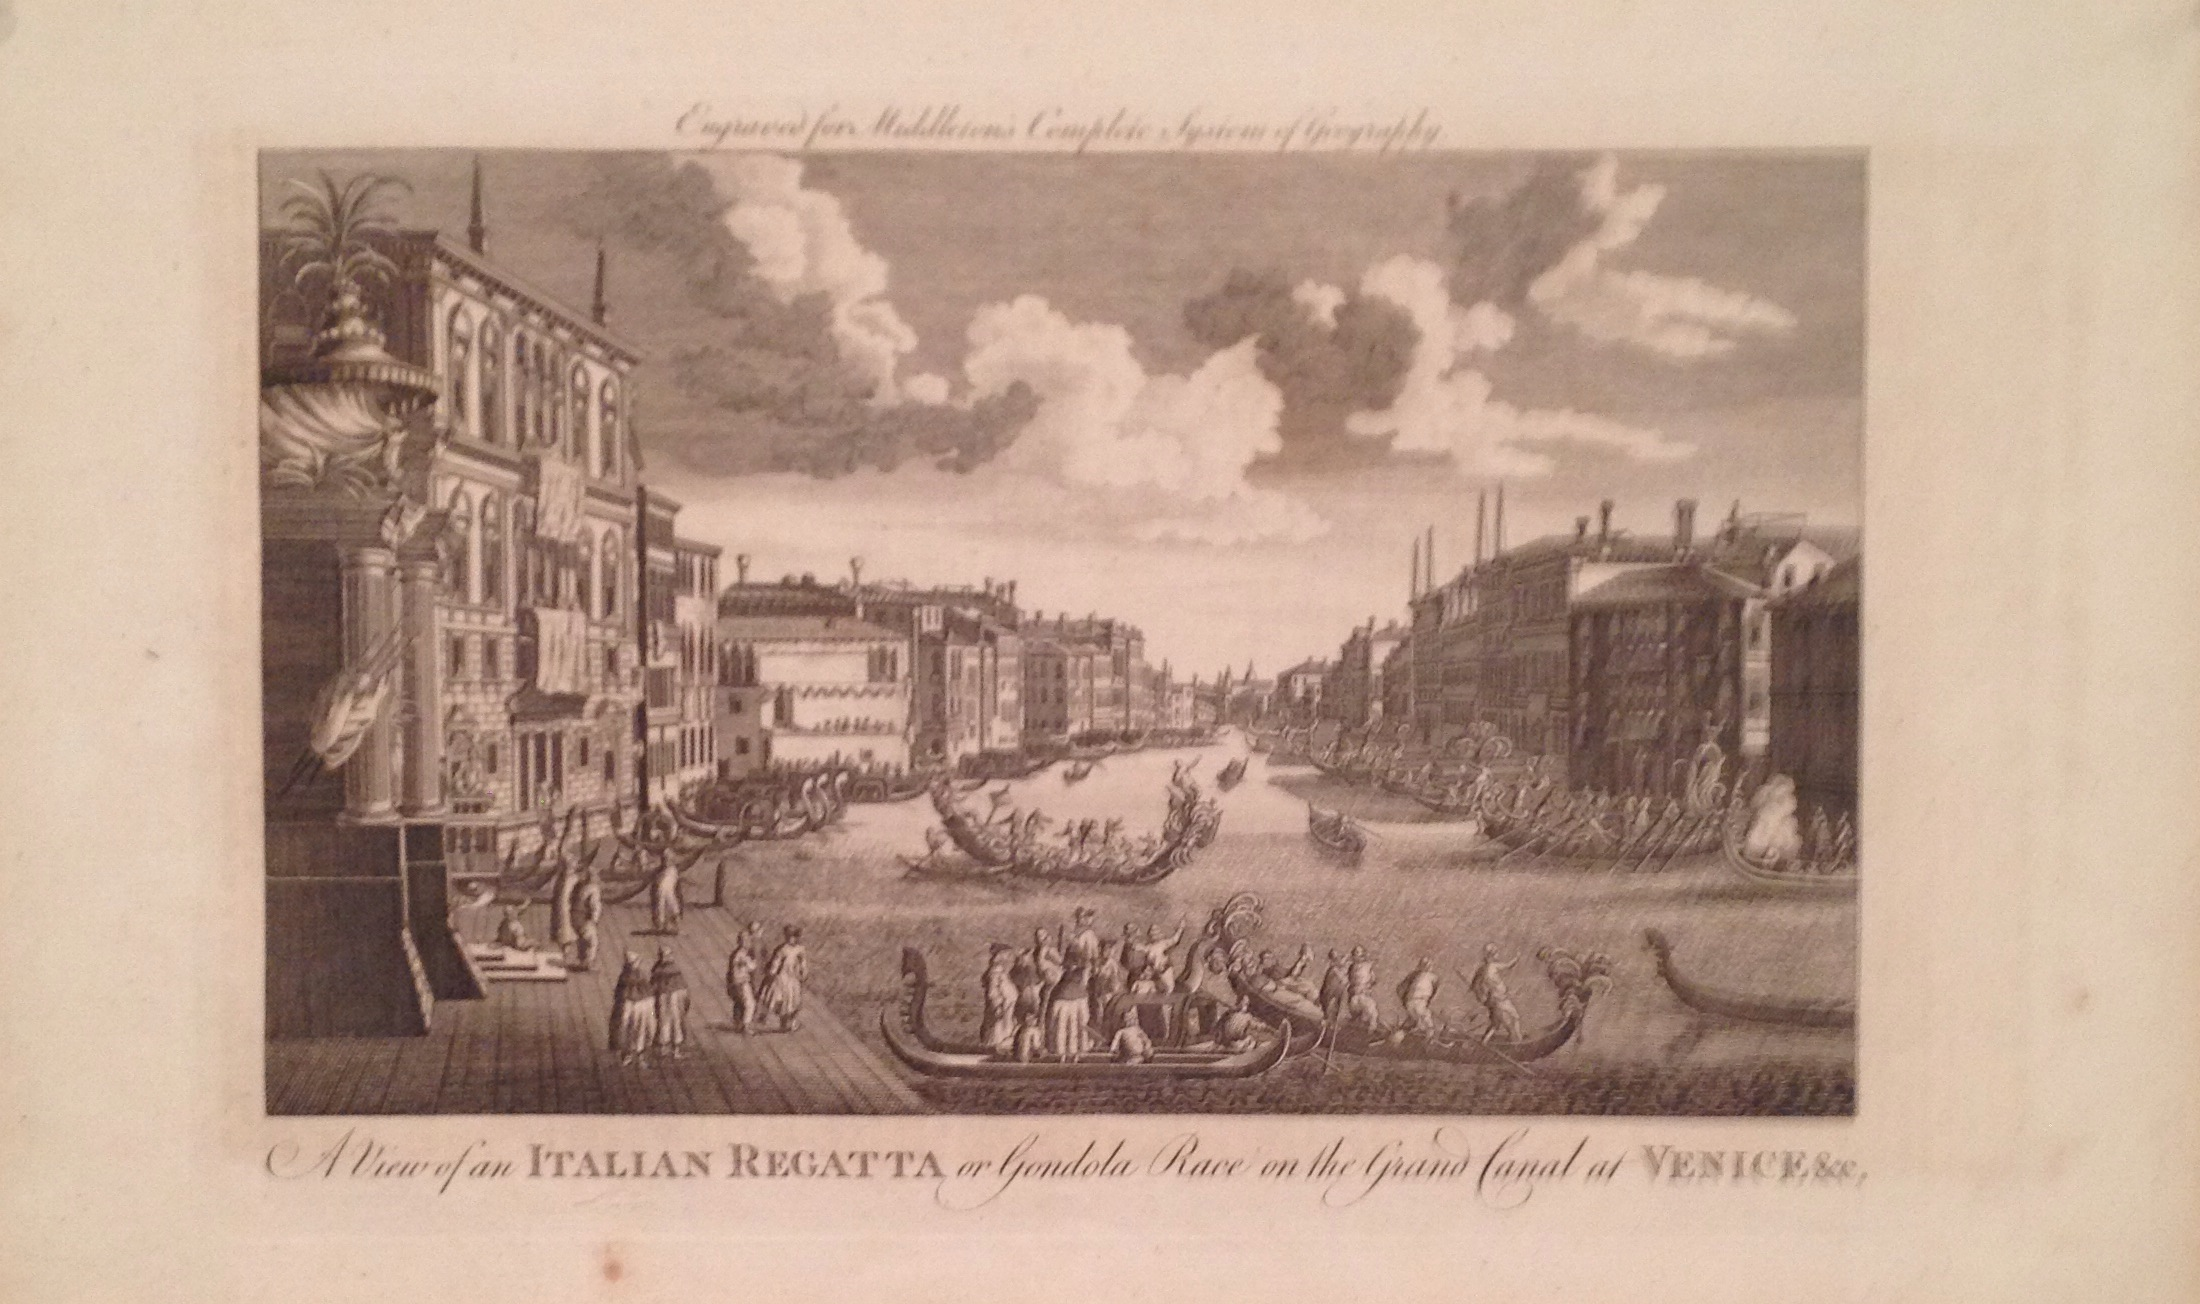 A View of an Italian Regatta